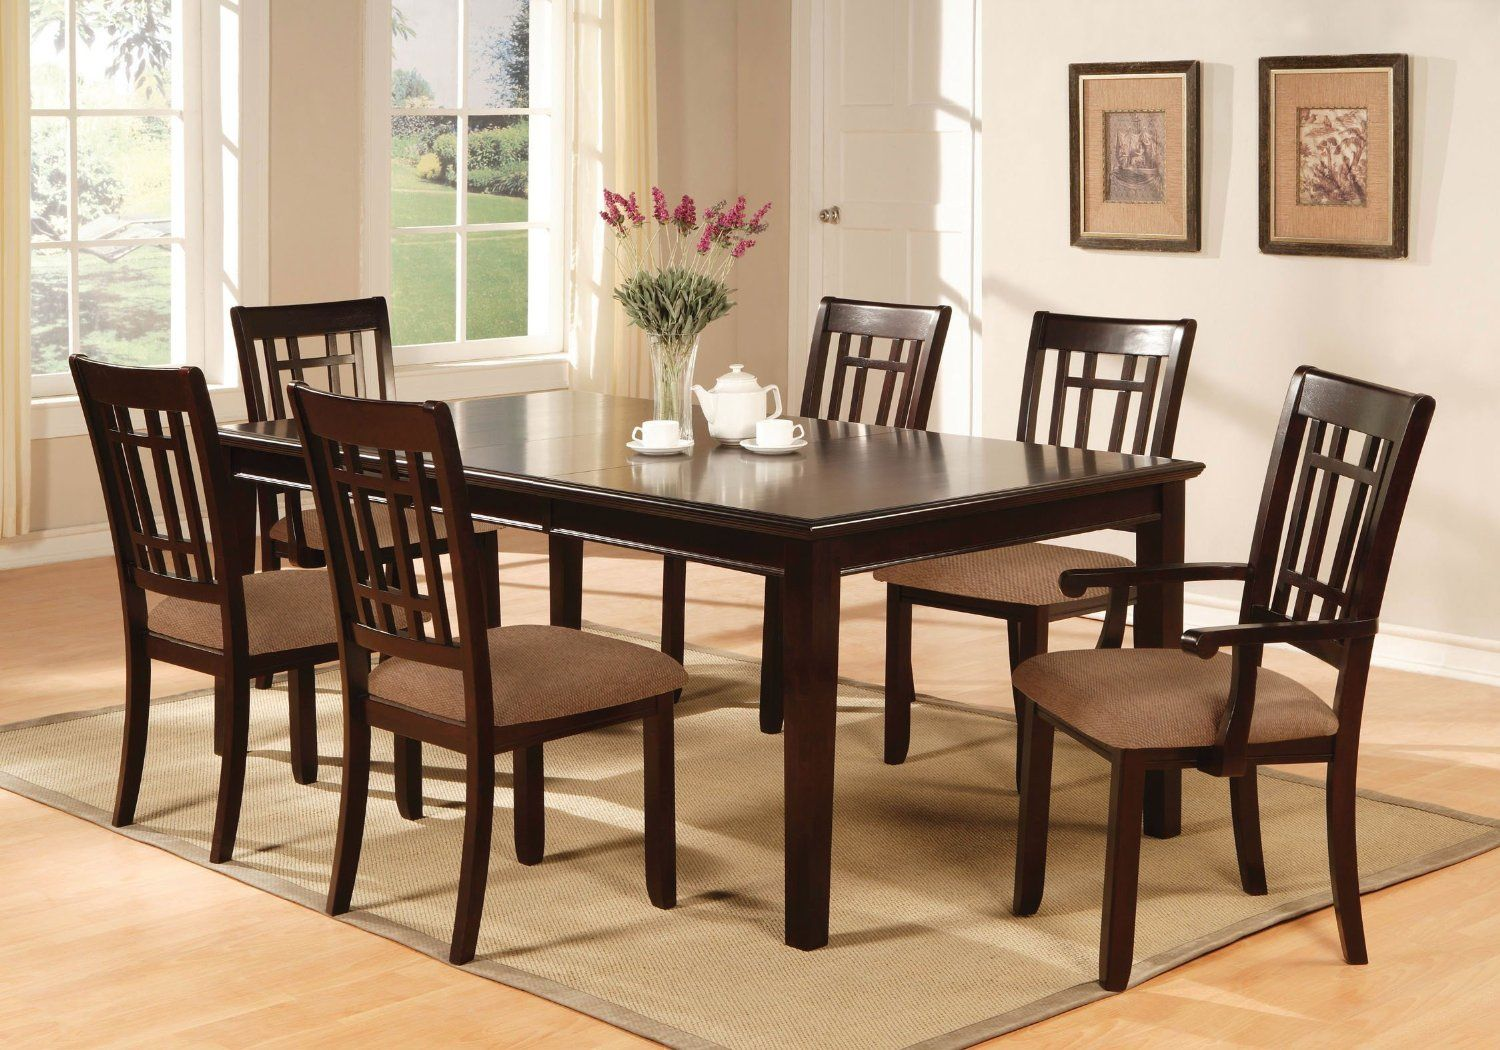 Enjoy Your Meals On The Madison 7 Piece Dining Room Furniture Set Delectable Dark Cherry Dining Room Set Review